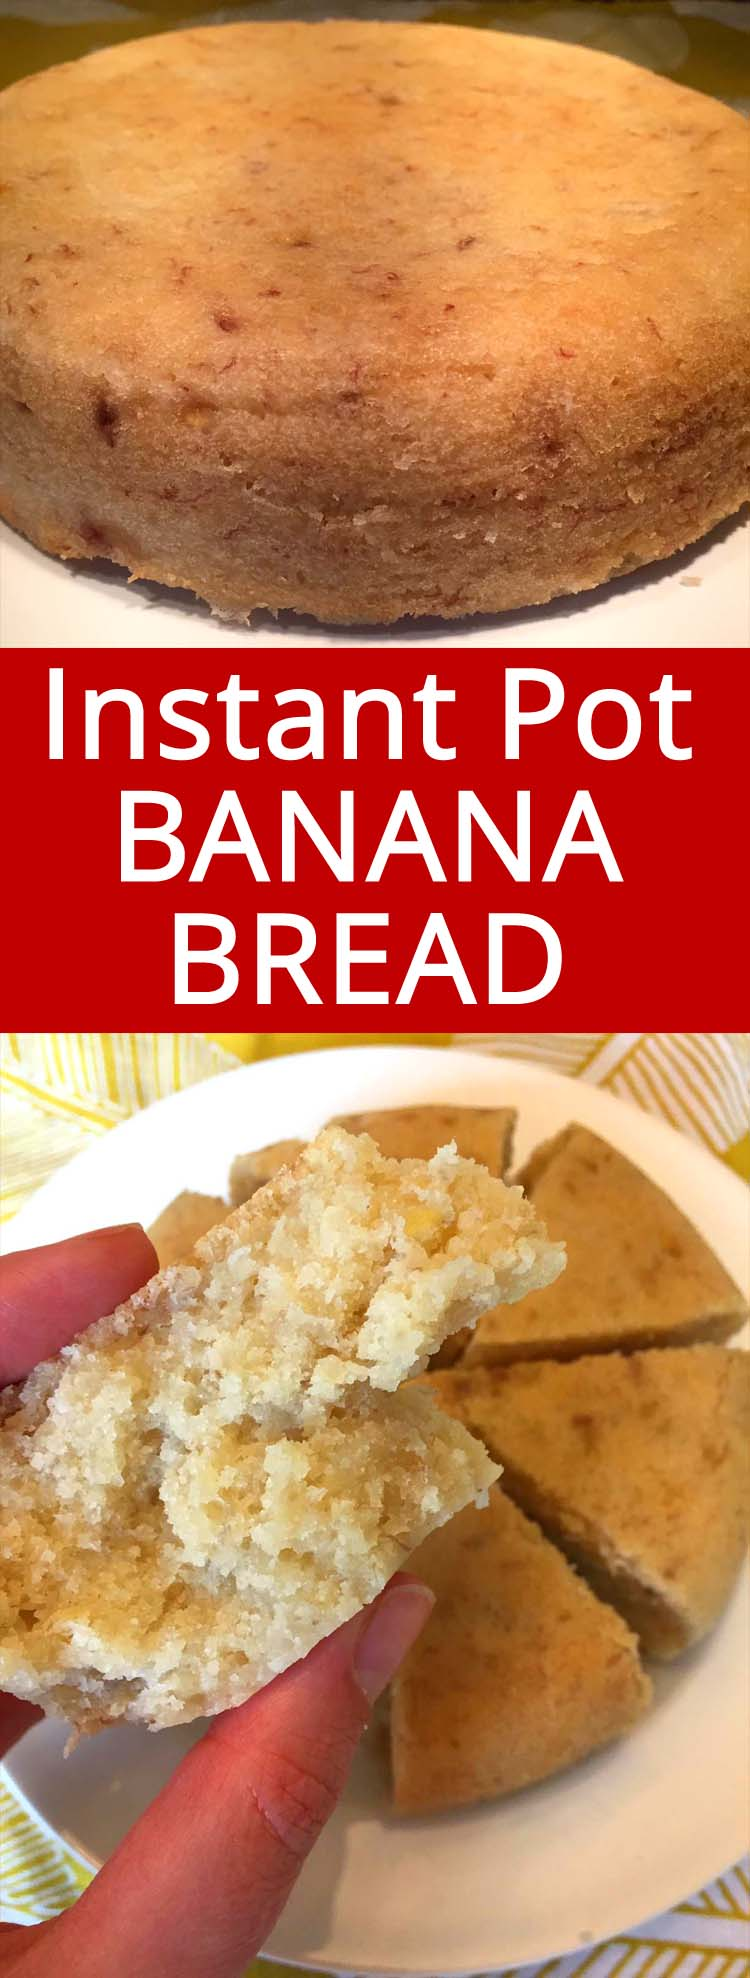 This Instant Pot banana bread is amazing! I've tried other Instant Pot banana bread recipes, but this one wins hands down.  This is the only recipe that has soft nice texture like regular banana bread!